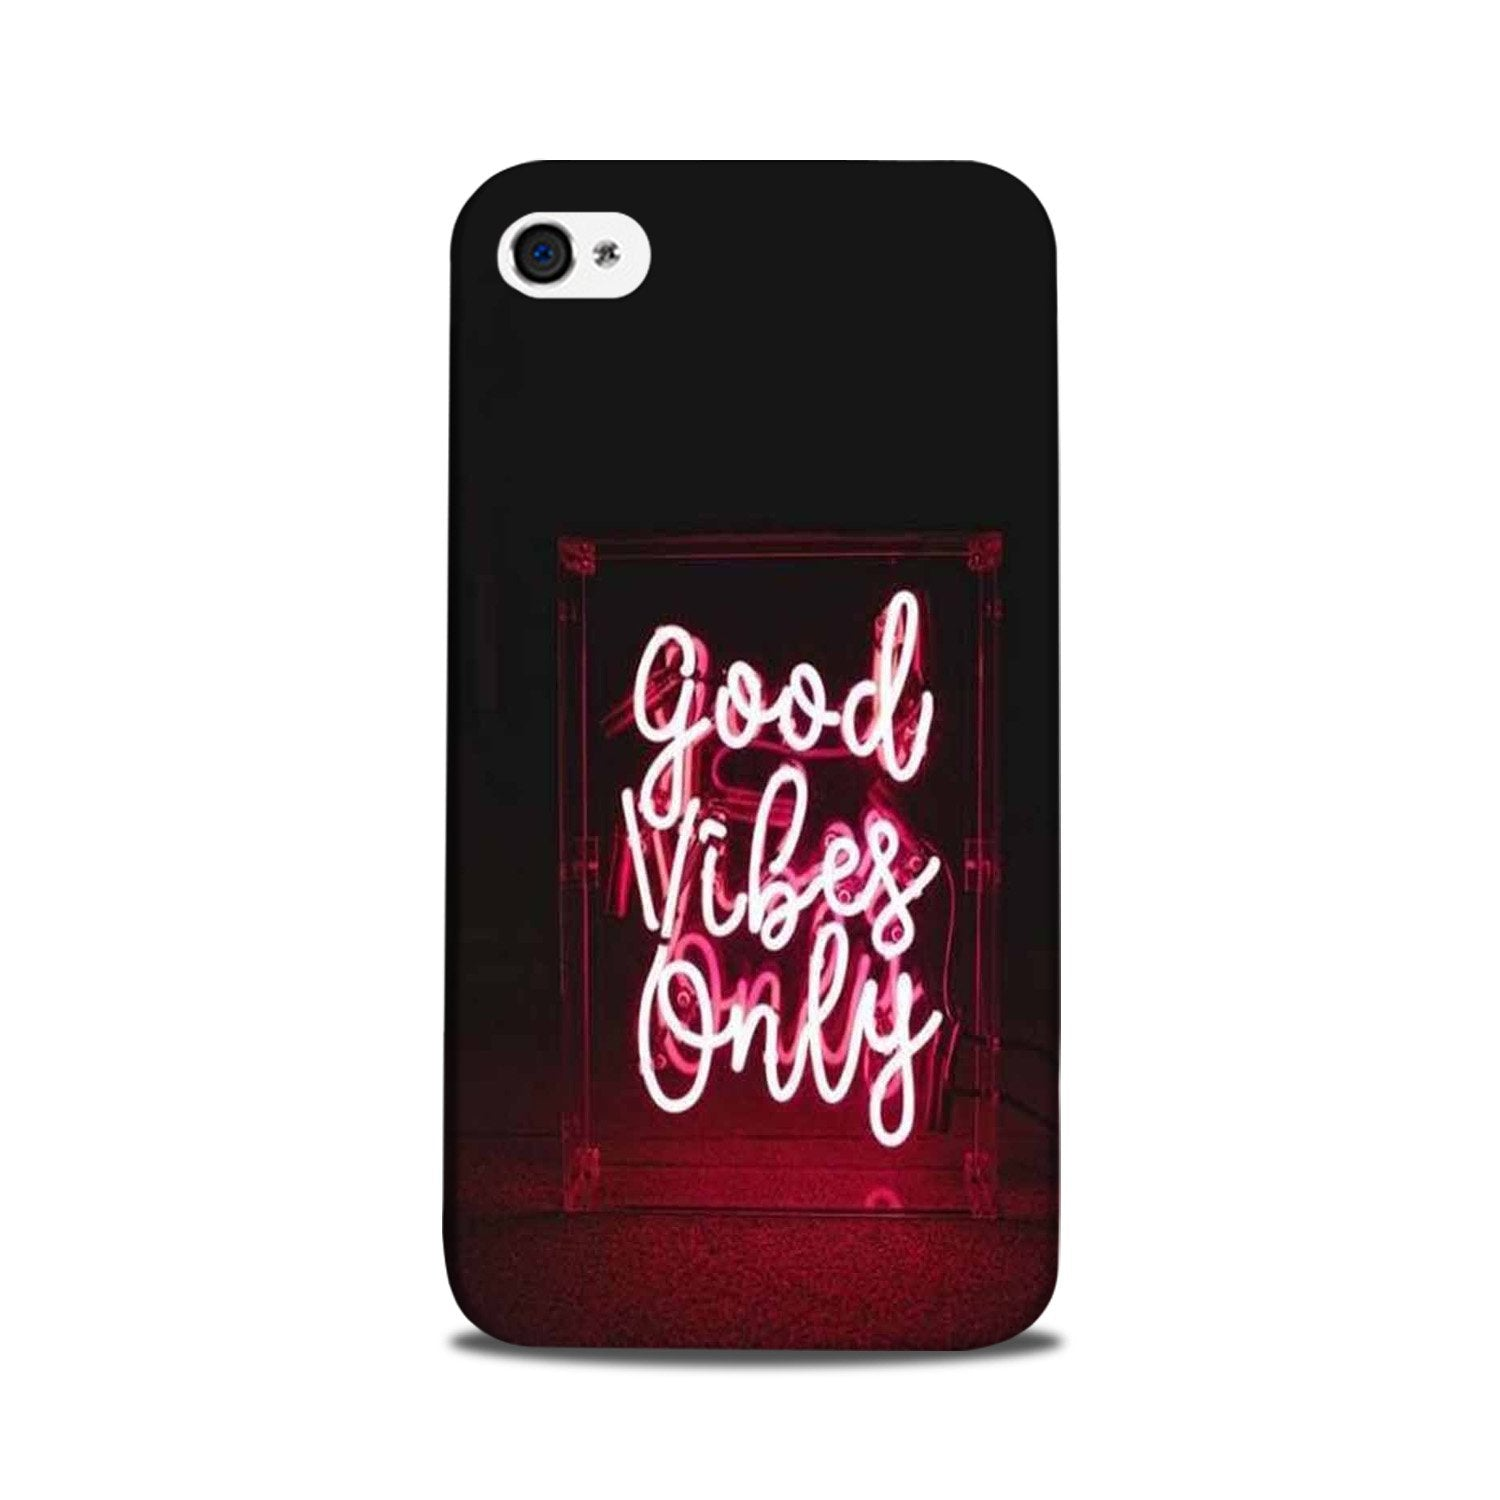 Good Vibes Only Mobile Back Case for iPhone 5/ 5s  (Design - 354)